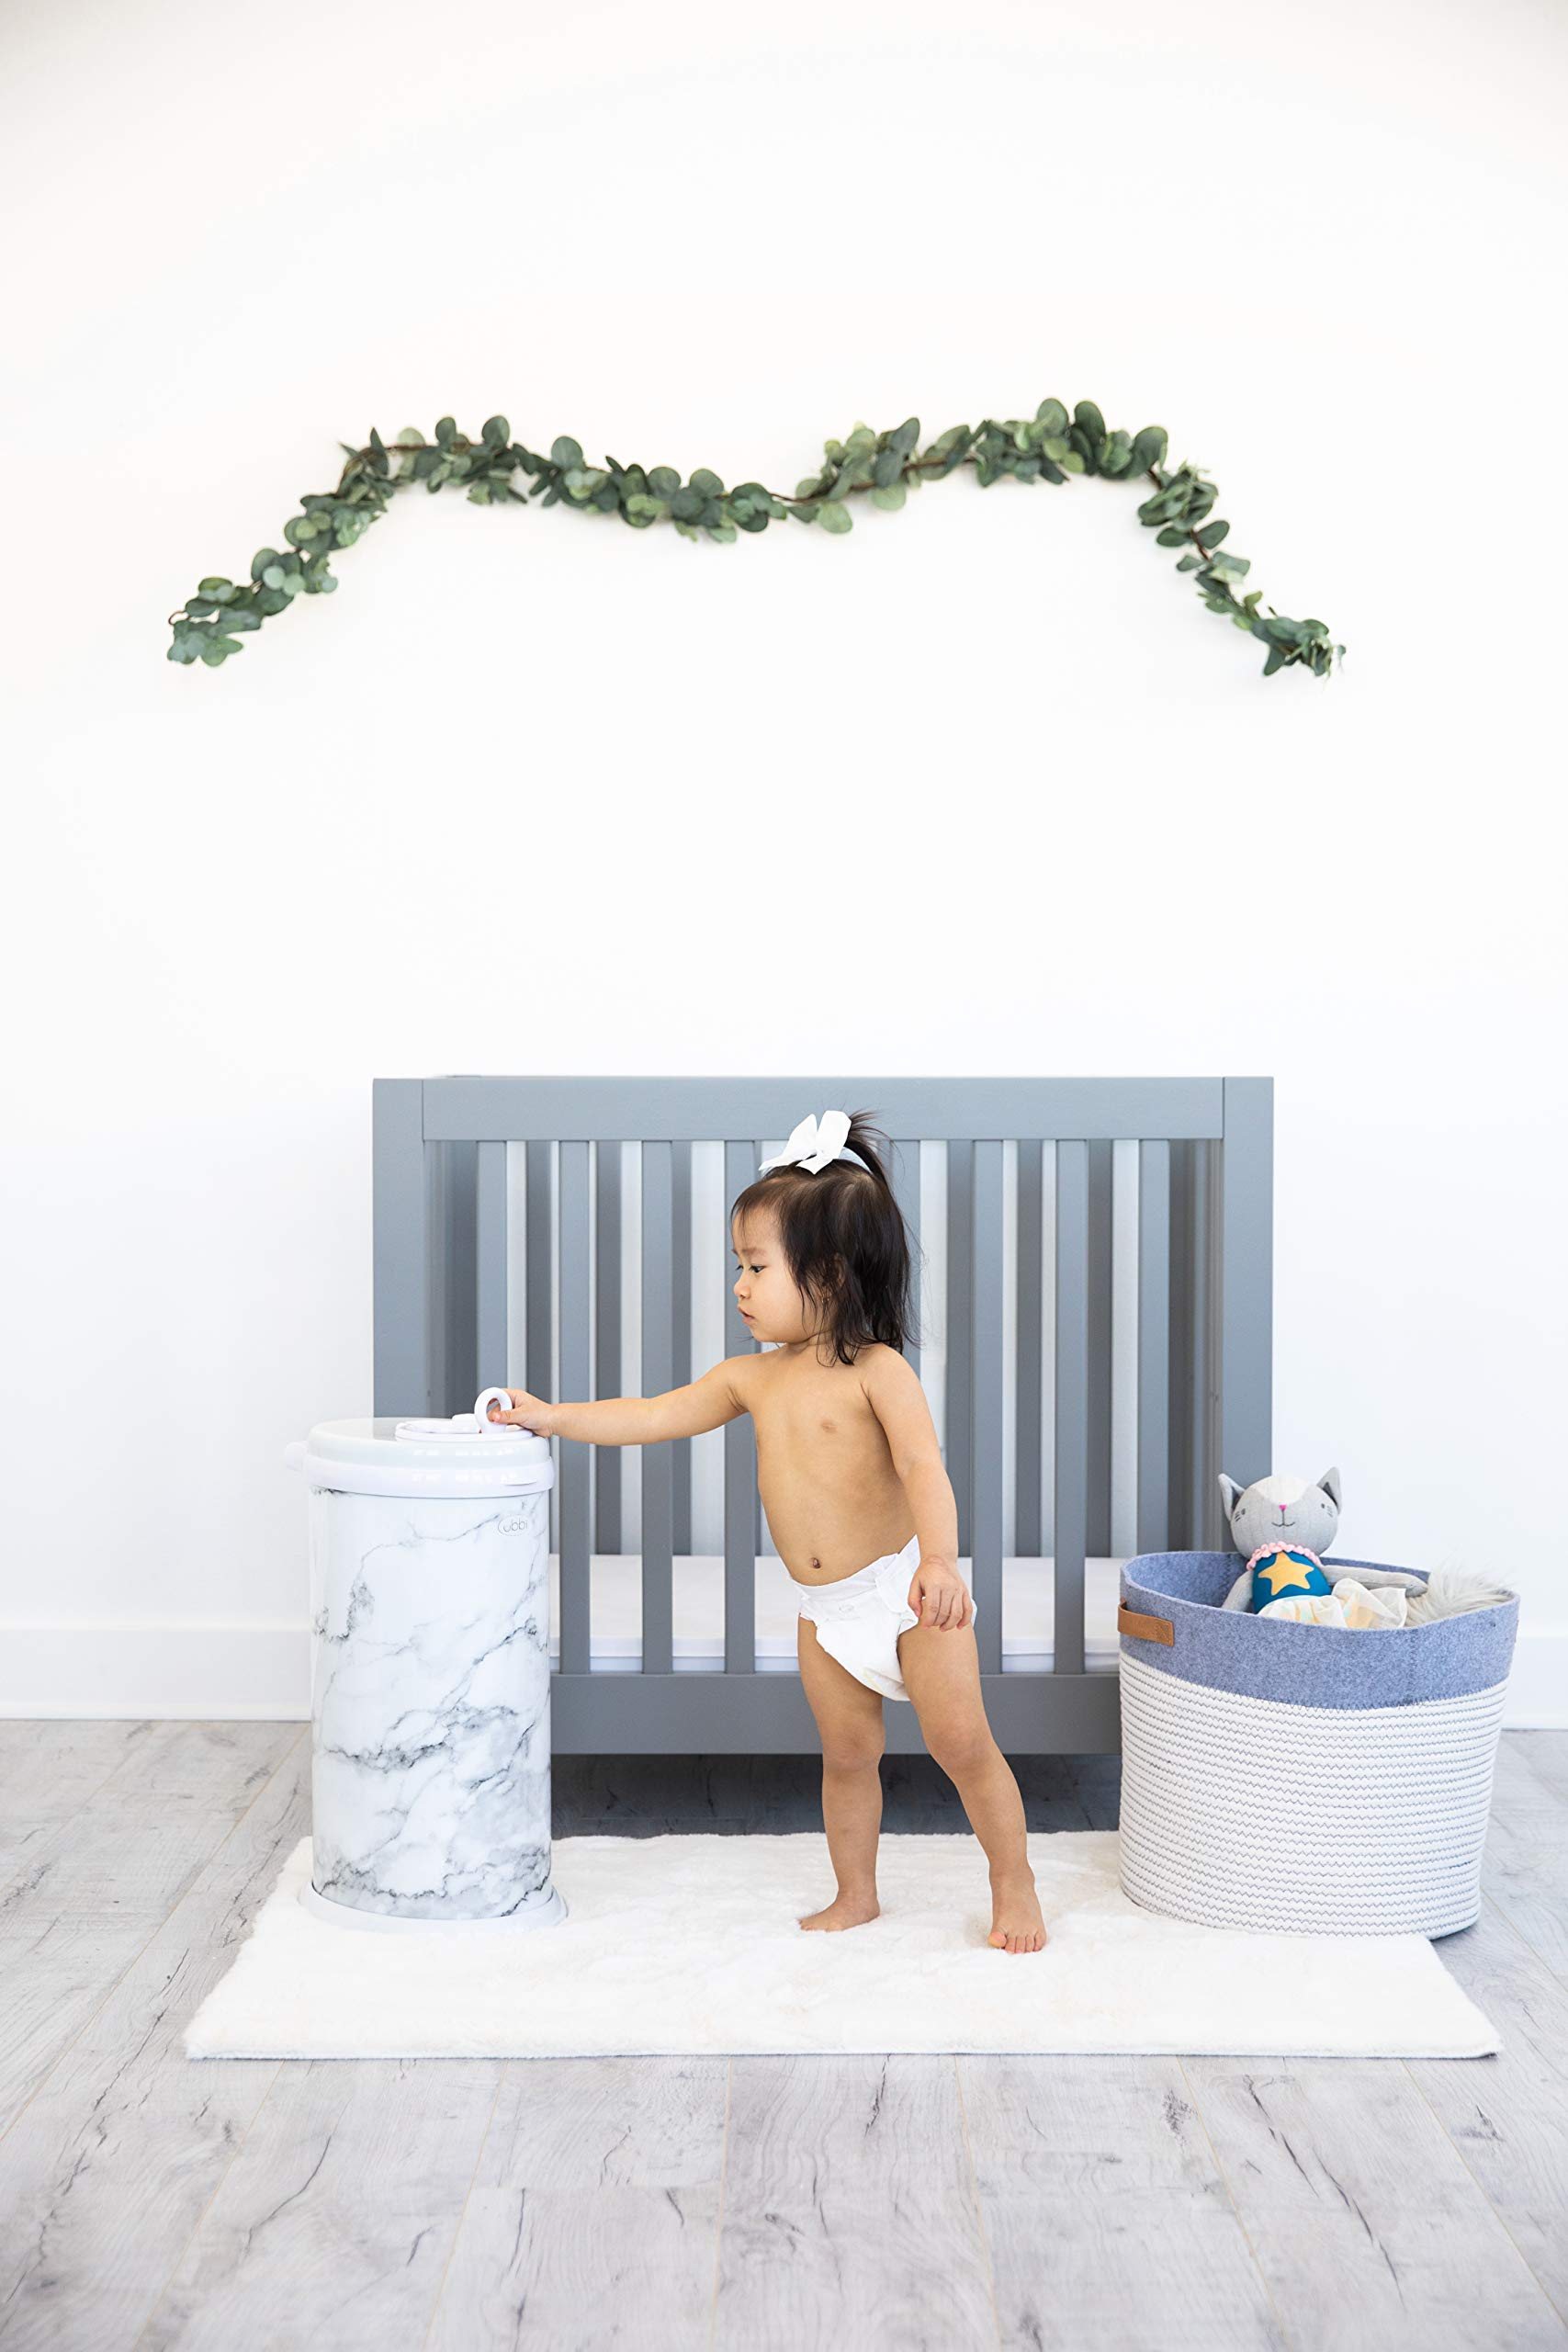 Ubbi Steel Odor Locking, No Special Bag Required Money Saving, Awards-Winning, Modern Design Registry Must-Have Diaper Pail, Marble by Ubbi (Image #5)